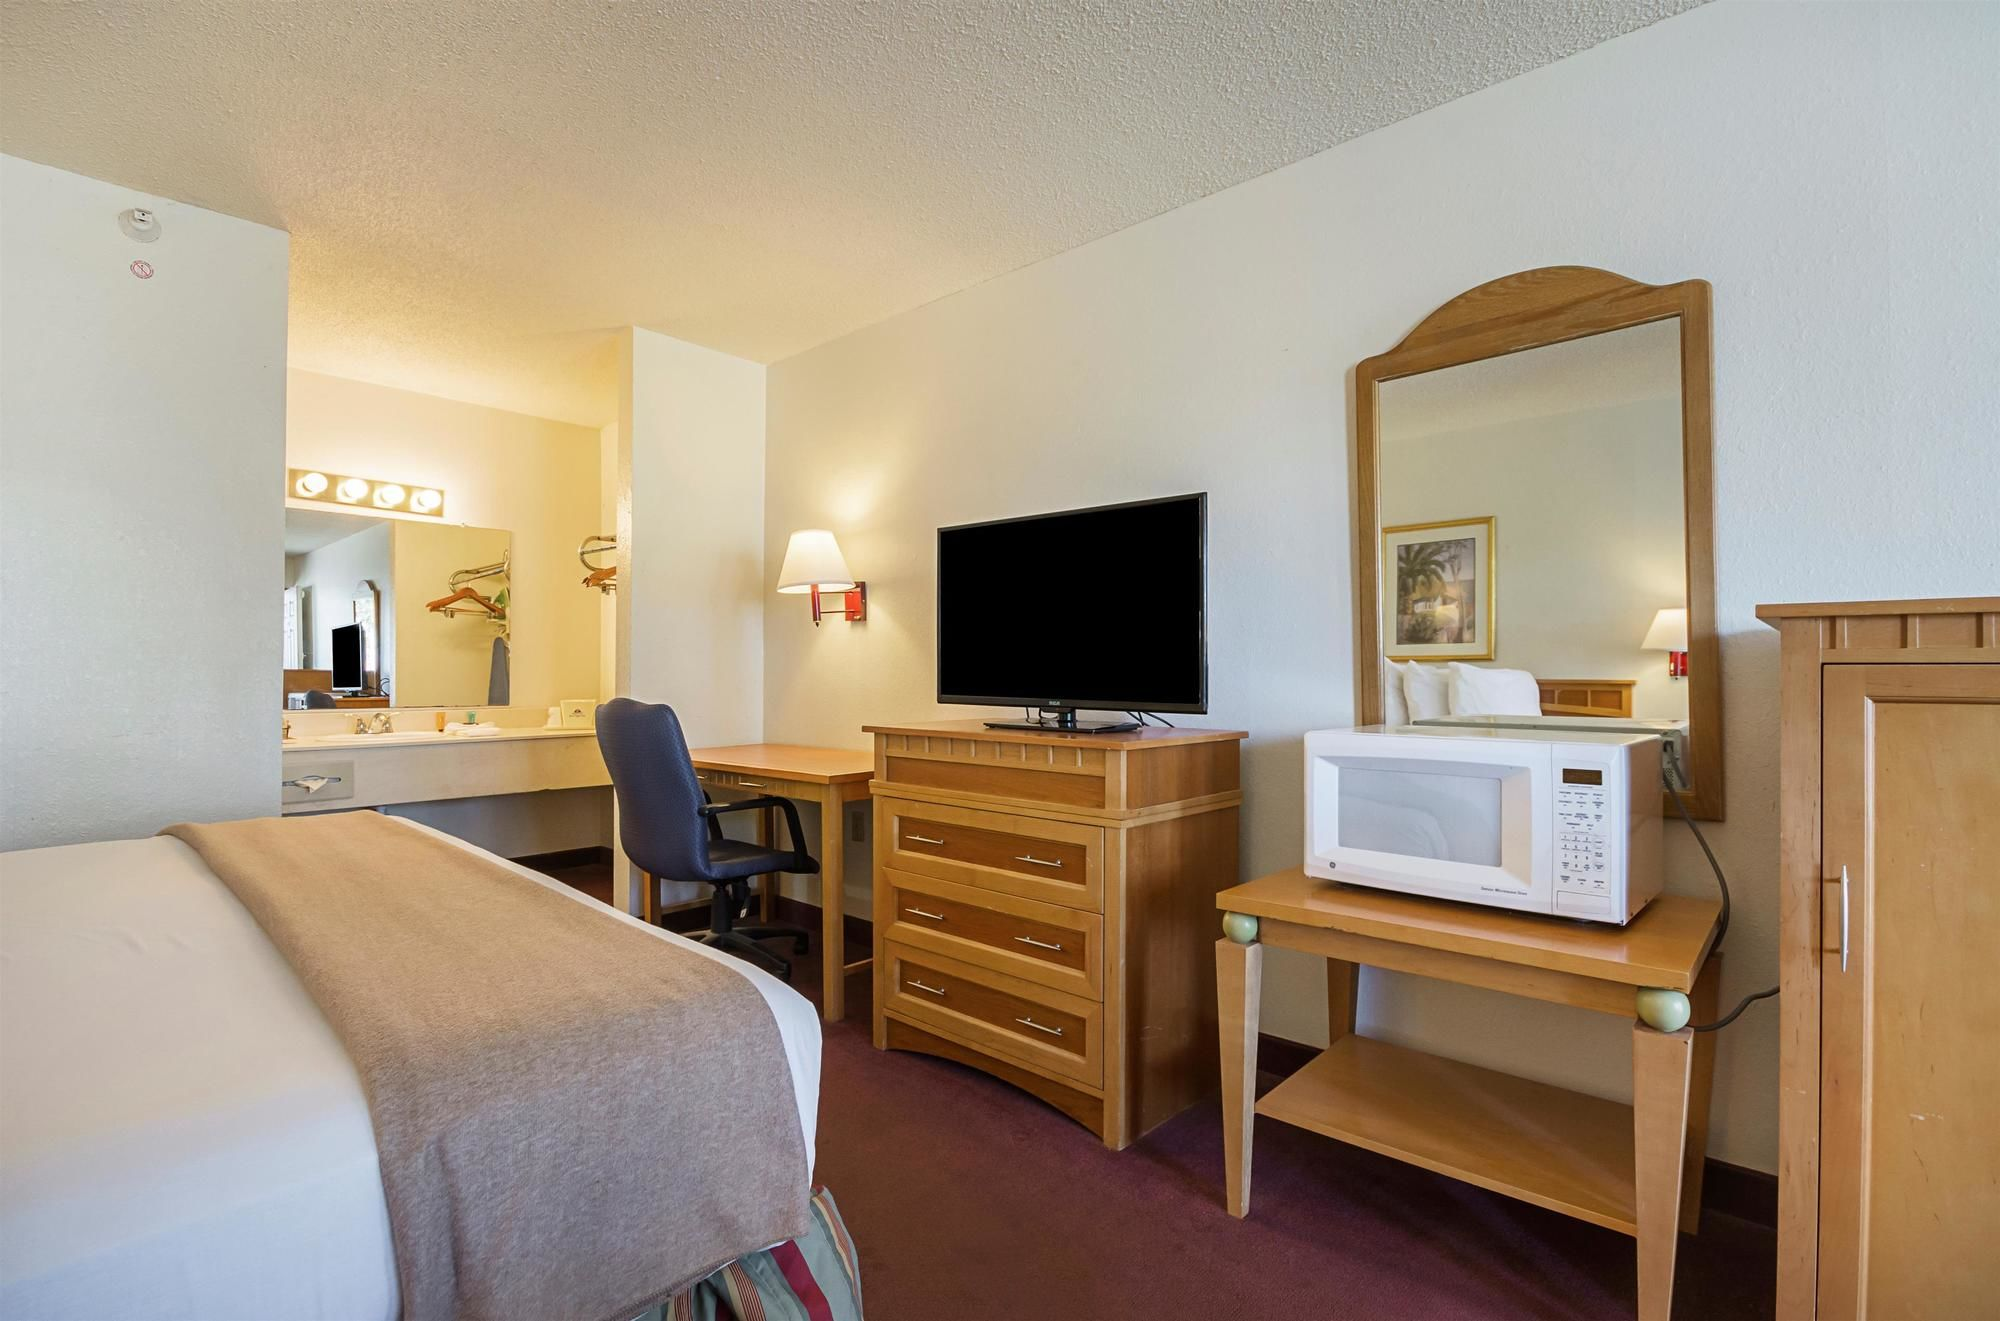 Americas Best Value Inn & Suites Melbourne king bed